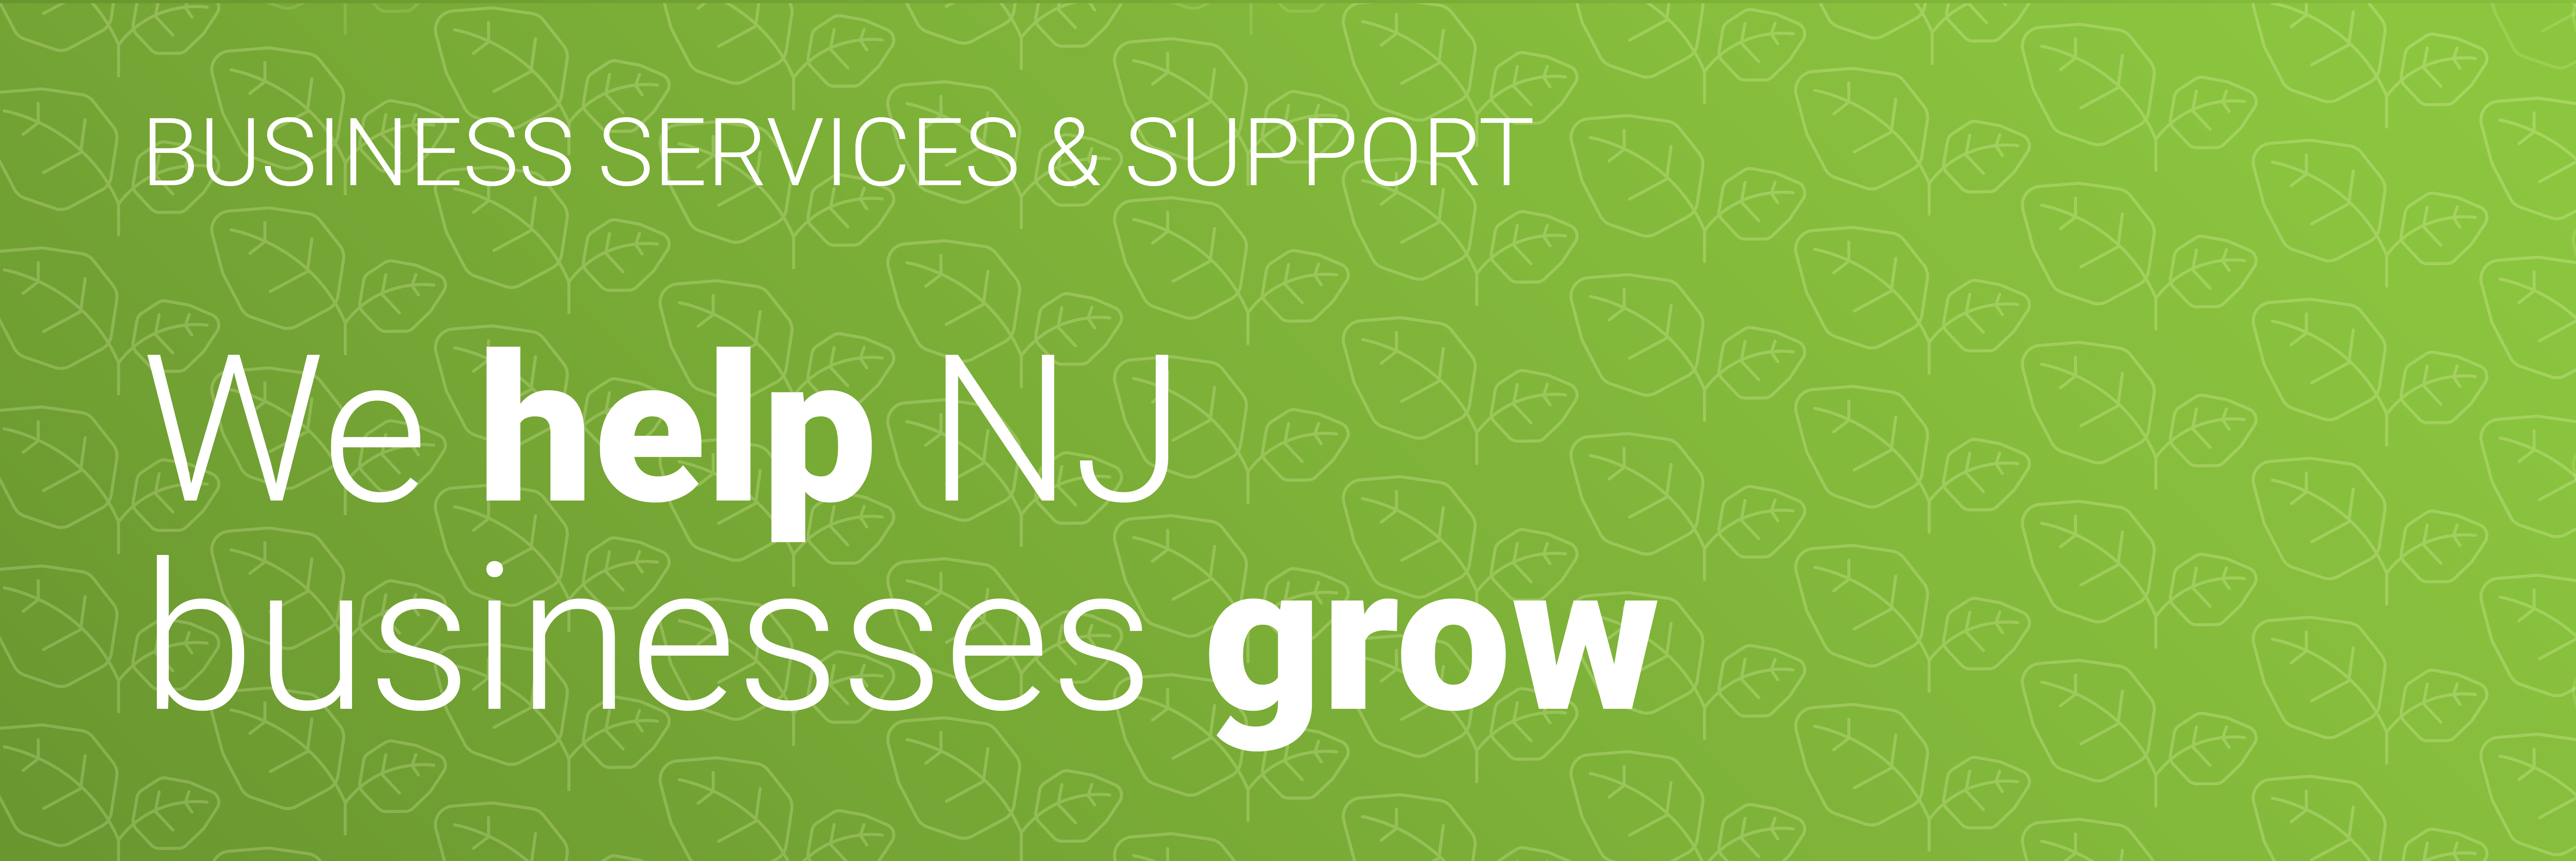 Business Services & Support